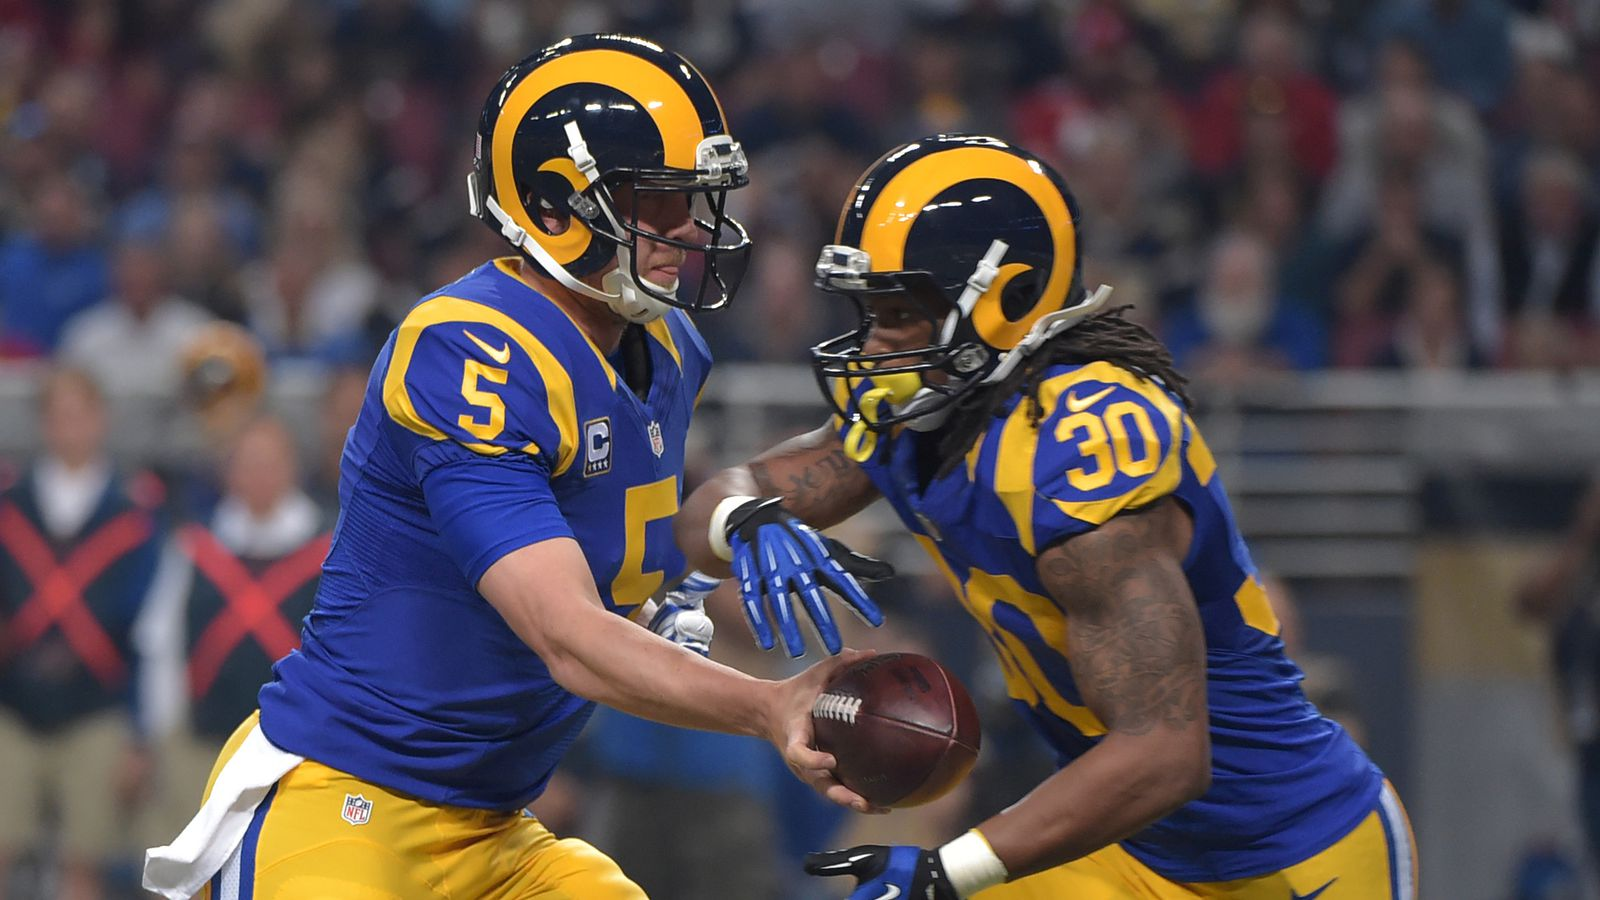 St Louis Rams Offense Poll Time Turf Show Times